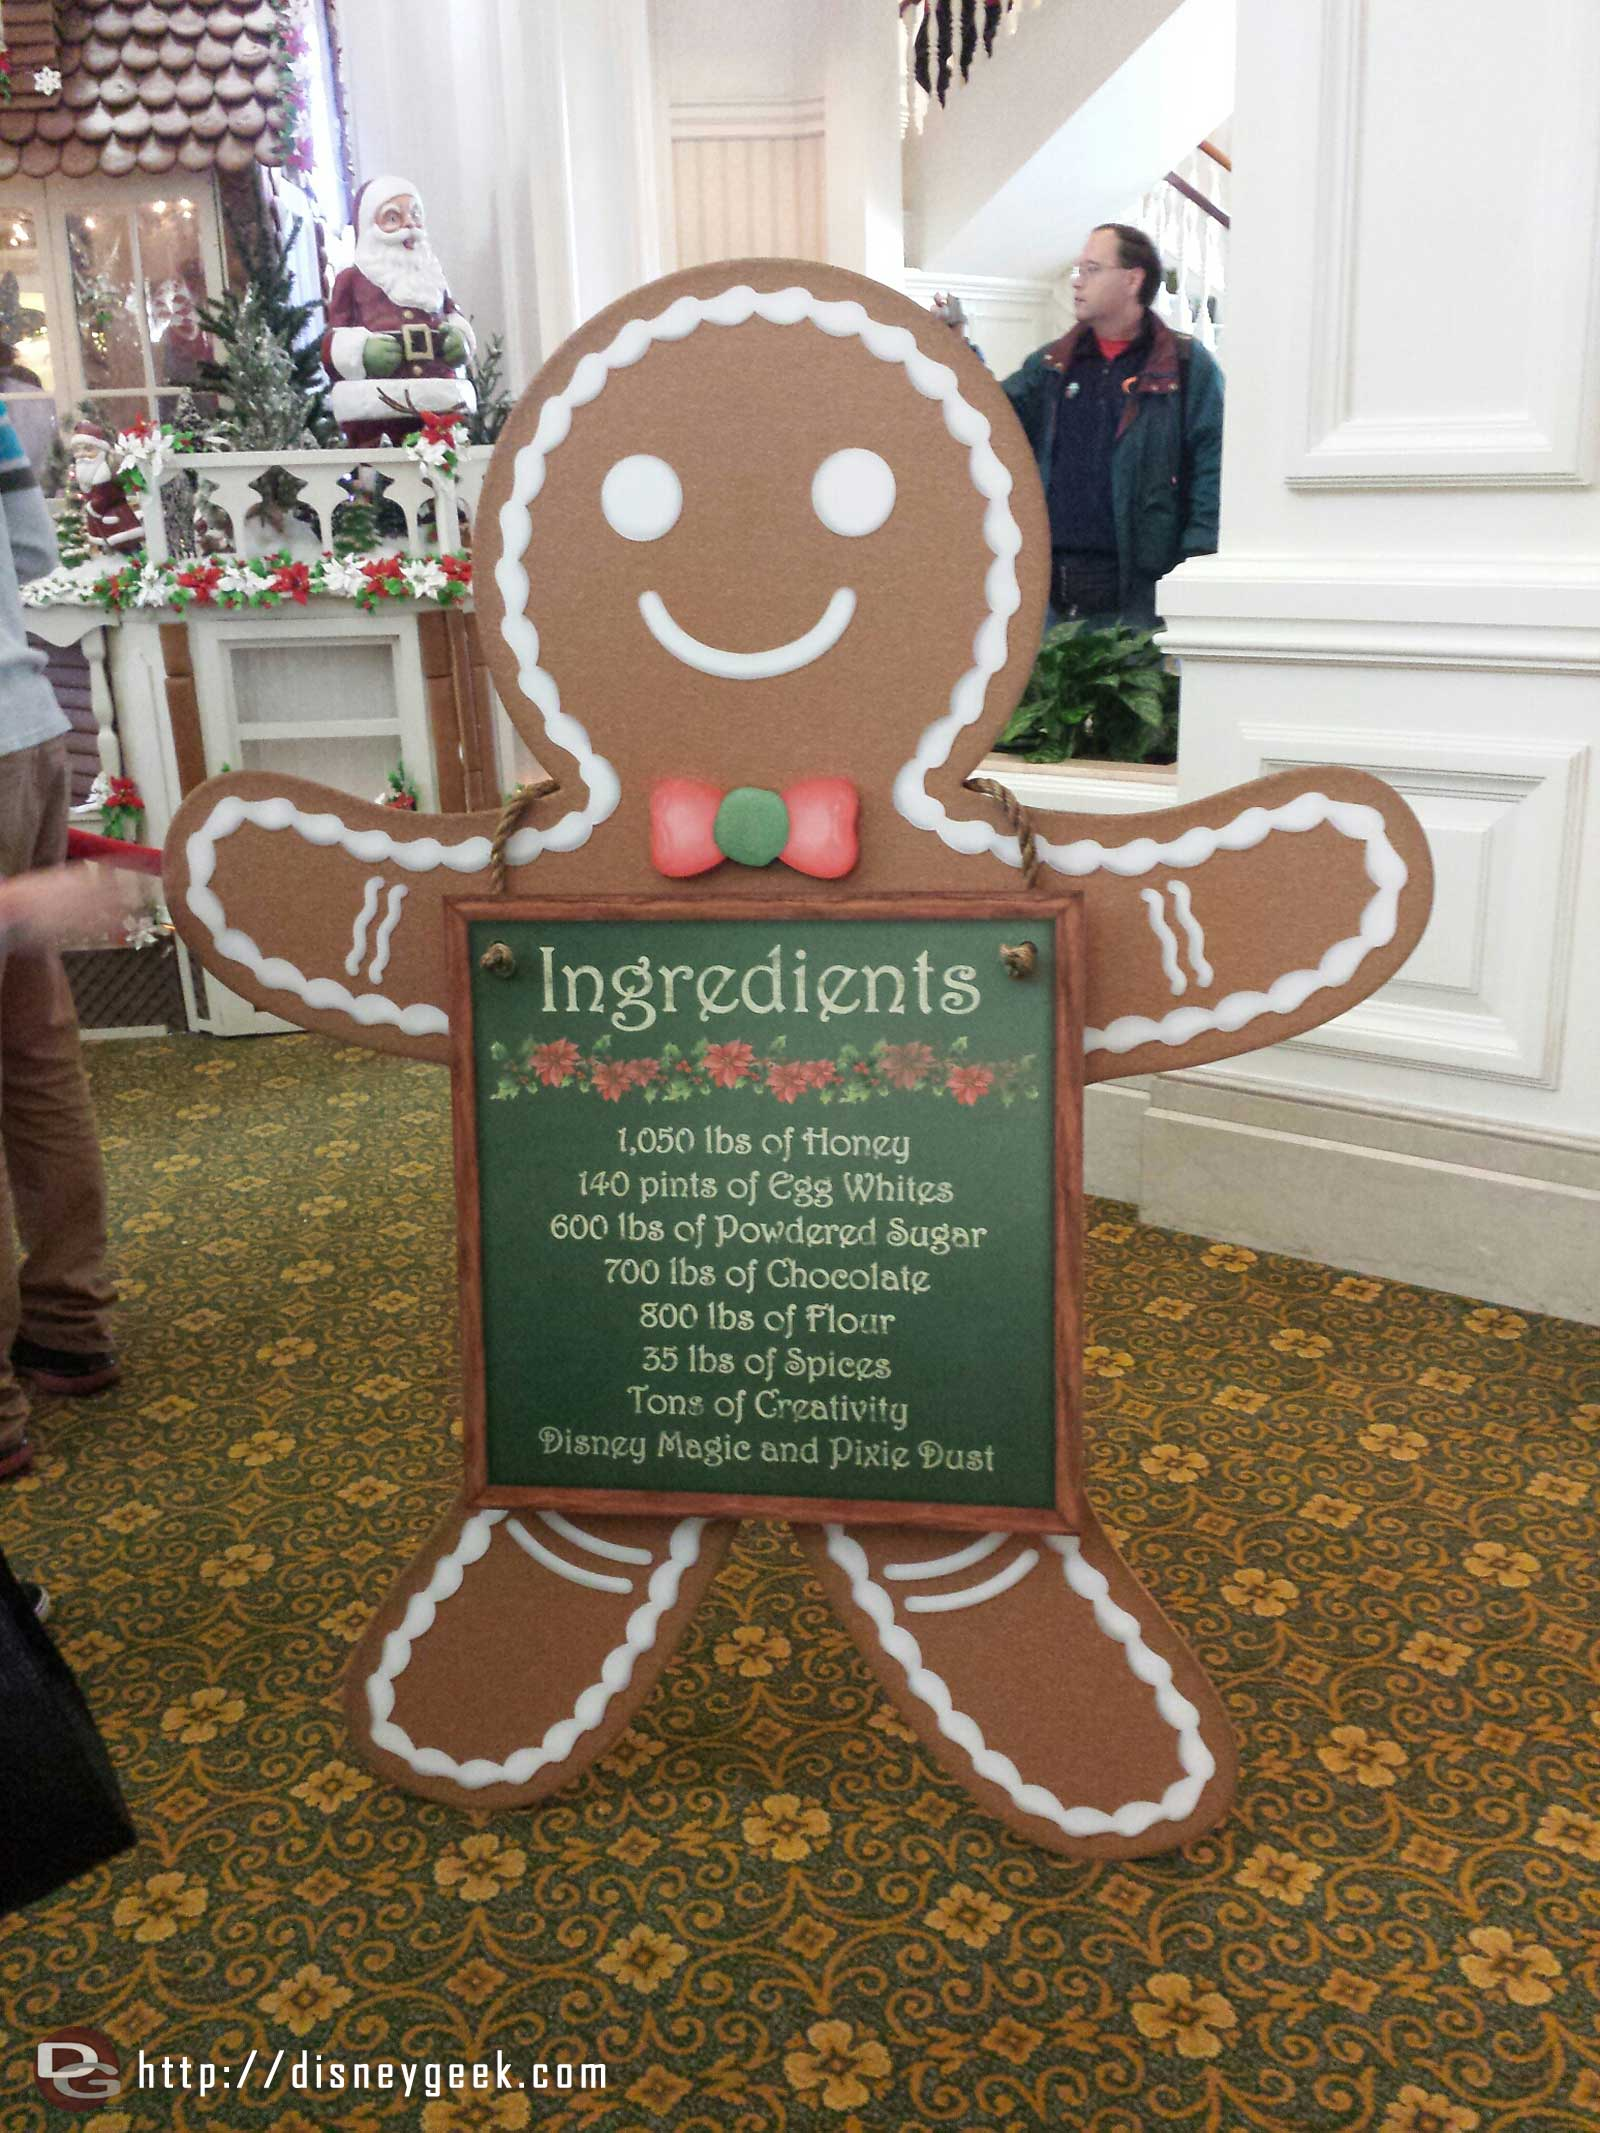 Grand Floridian gingerbread house ingredients #WDW